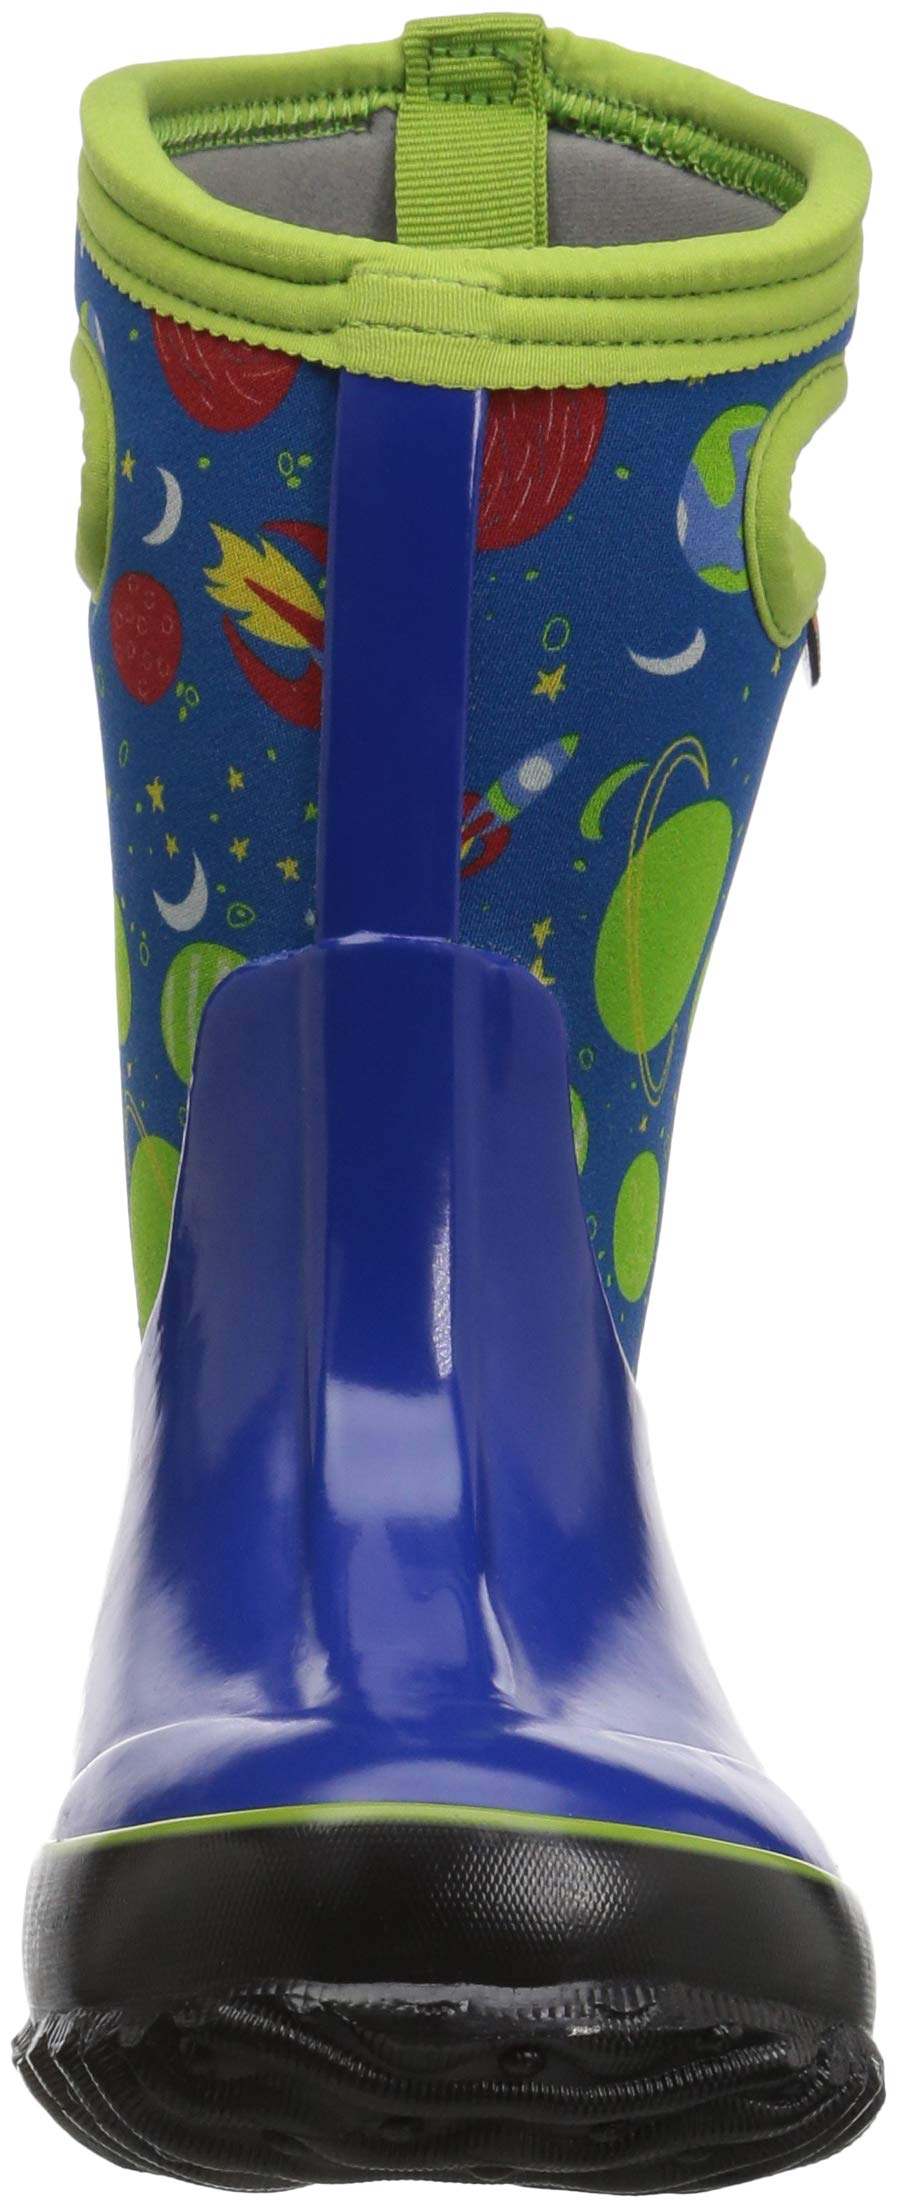 Bogs Classic High Waterproof Insulated Rubber Neoprene Rain Boot Snow, Space Blue/Multi, 11 M US Little Kid by Bogs (Image #4)